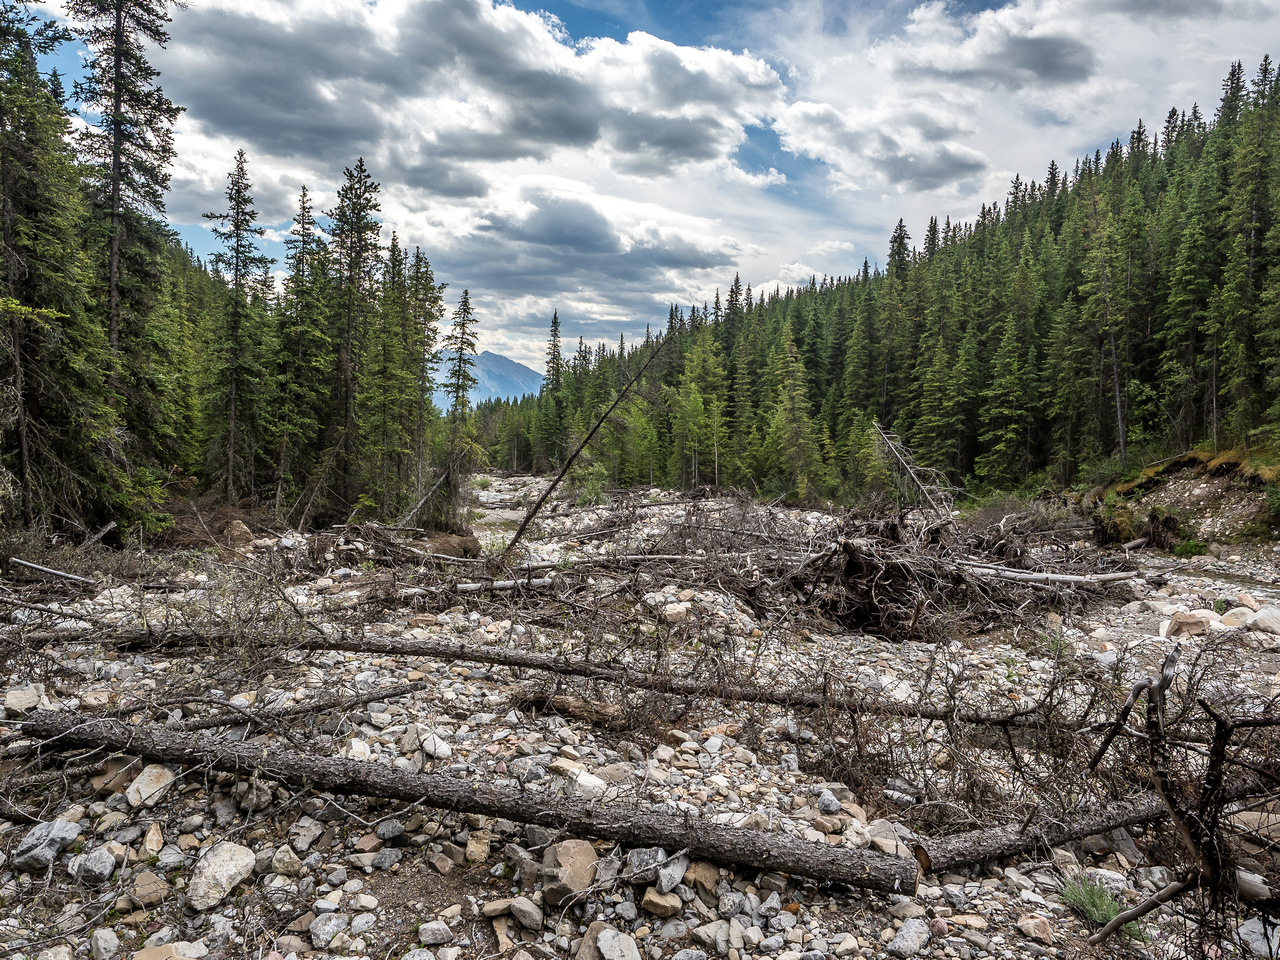 The 2013 floods had a dramatic impact on many streams in the Rockies, including Whitegoat.